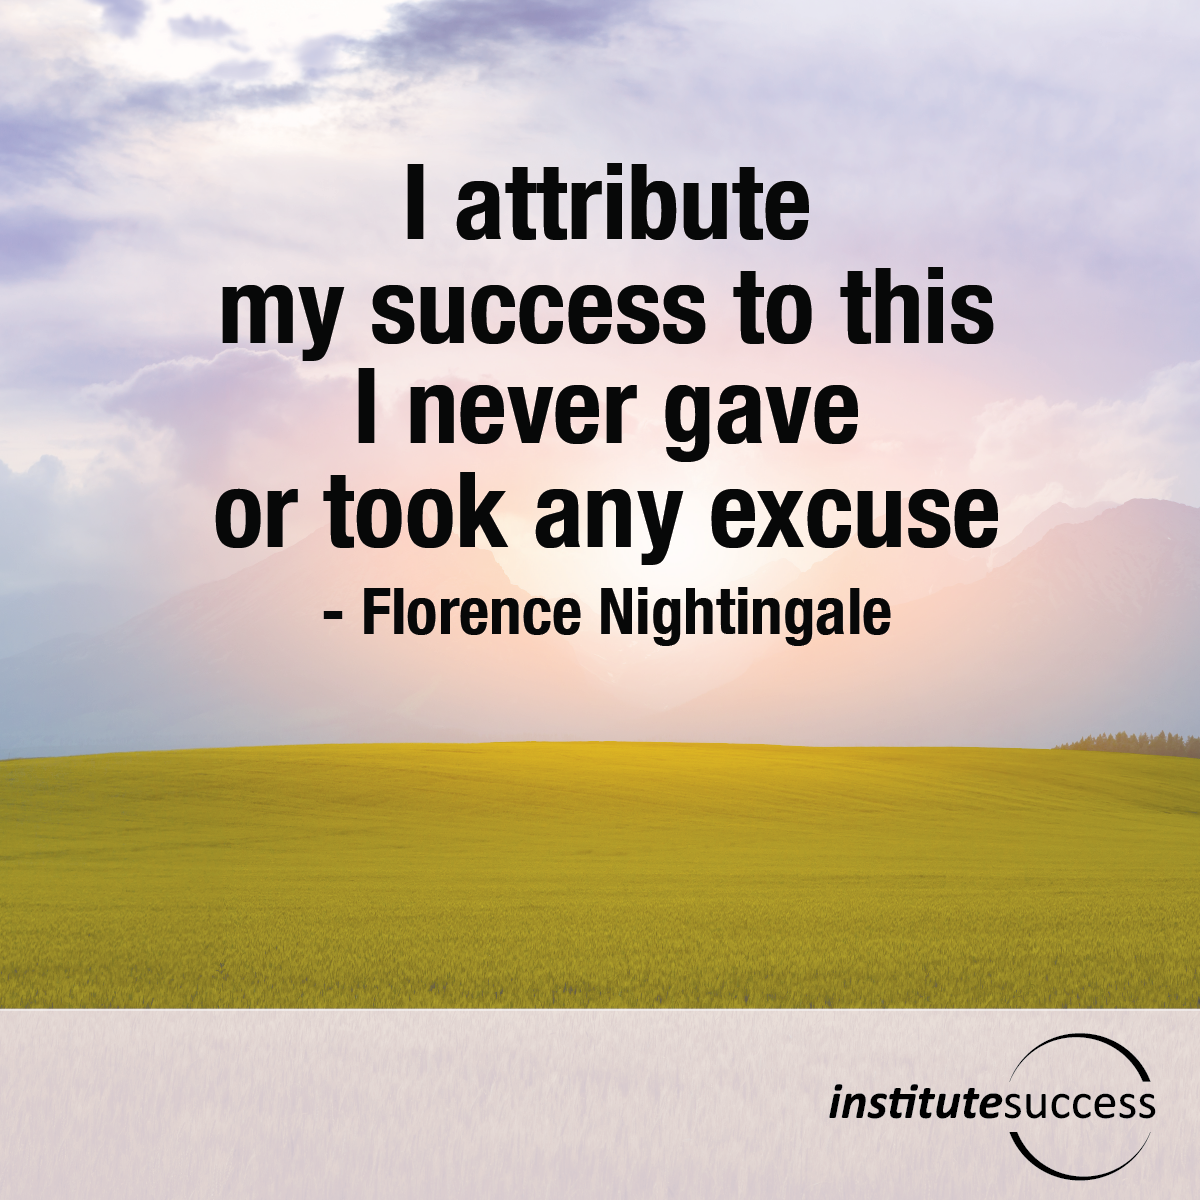 I attribute my success to this: I never gave or took any excuse – Florence Nightingale